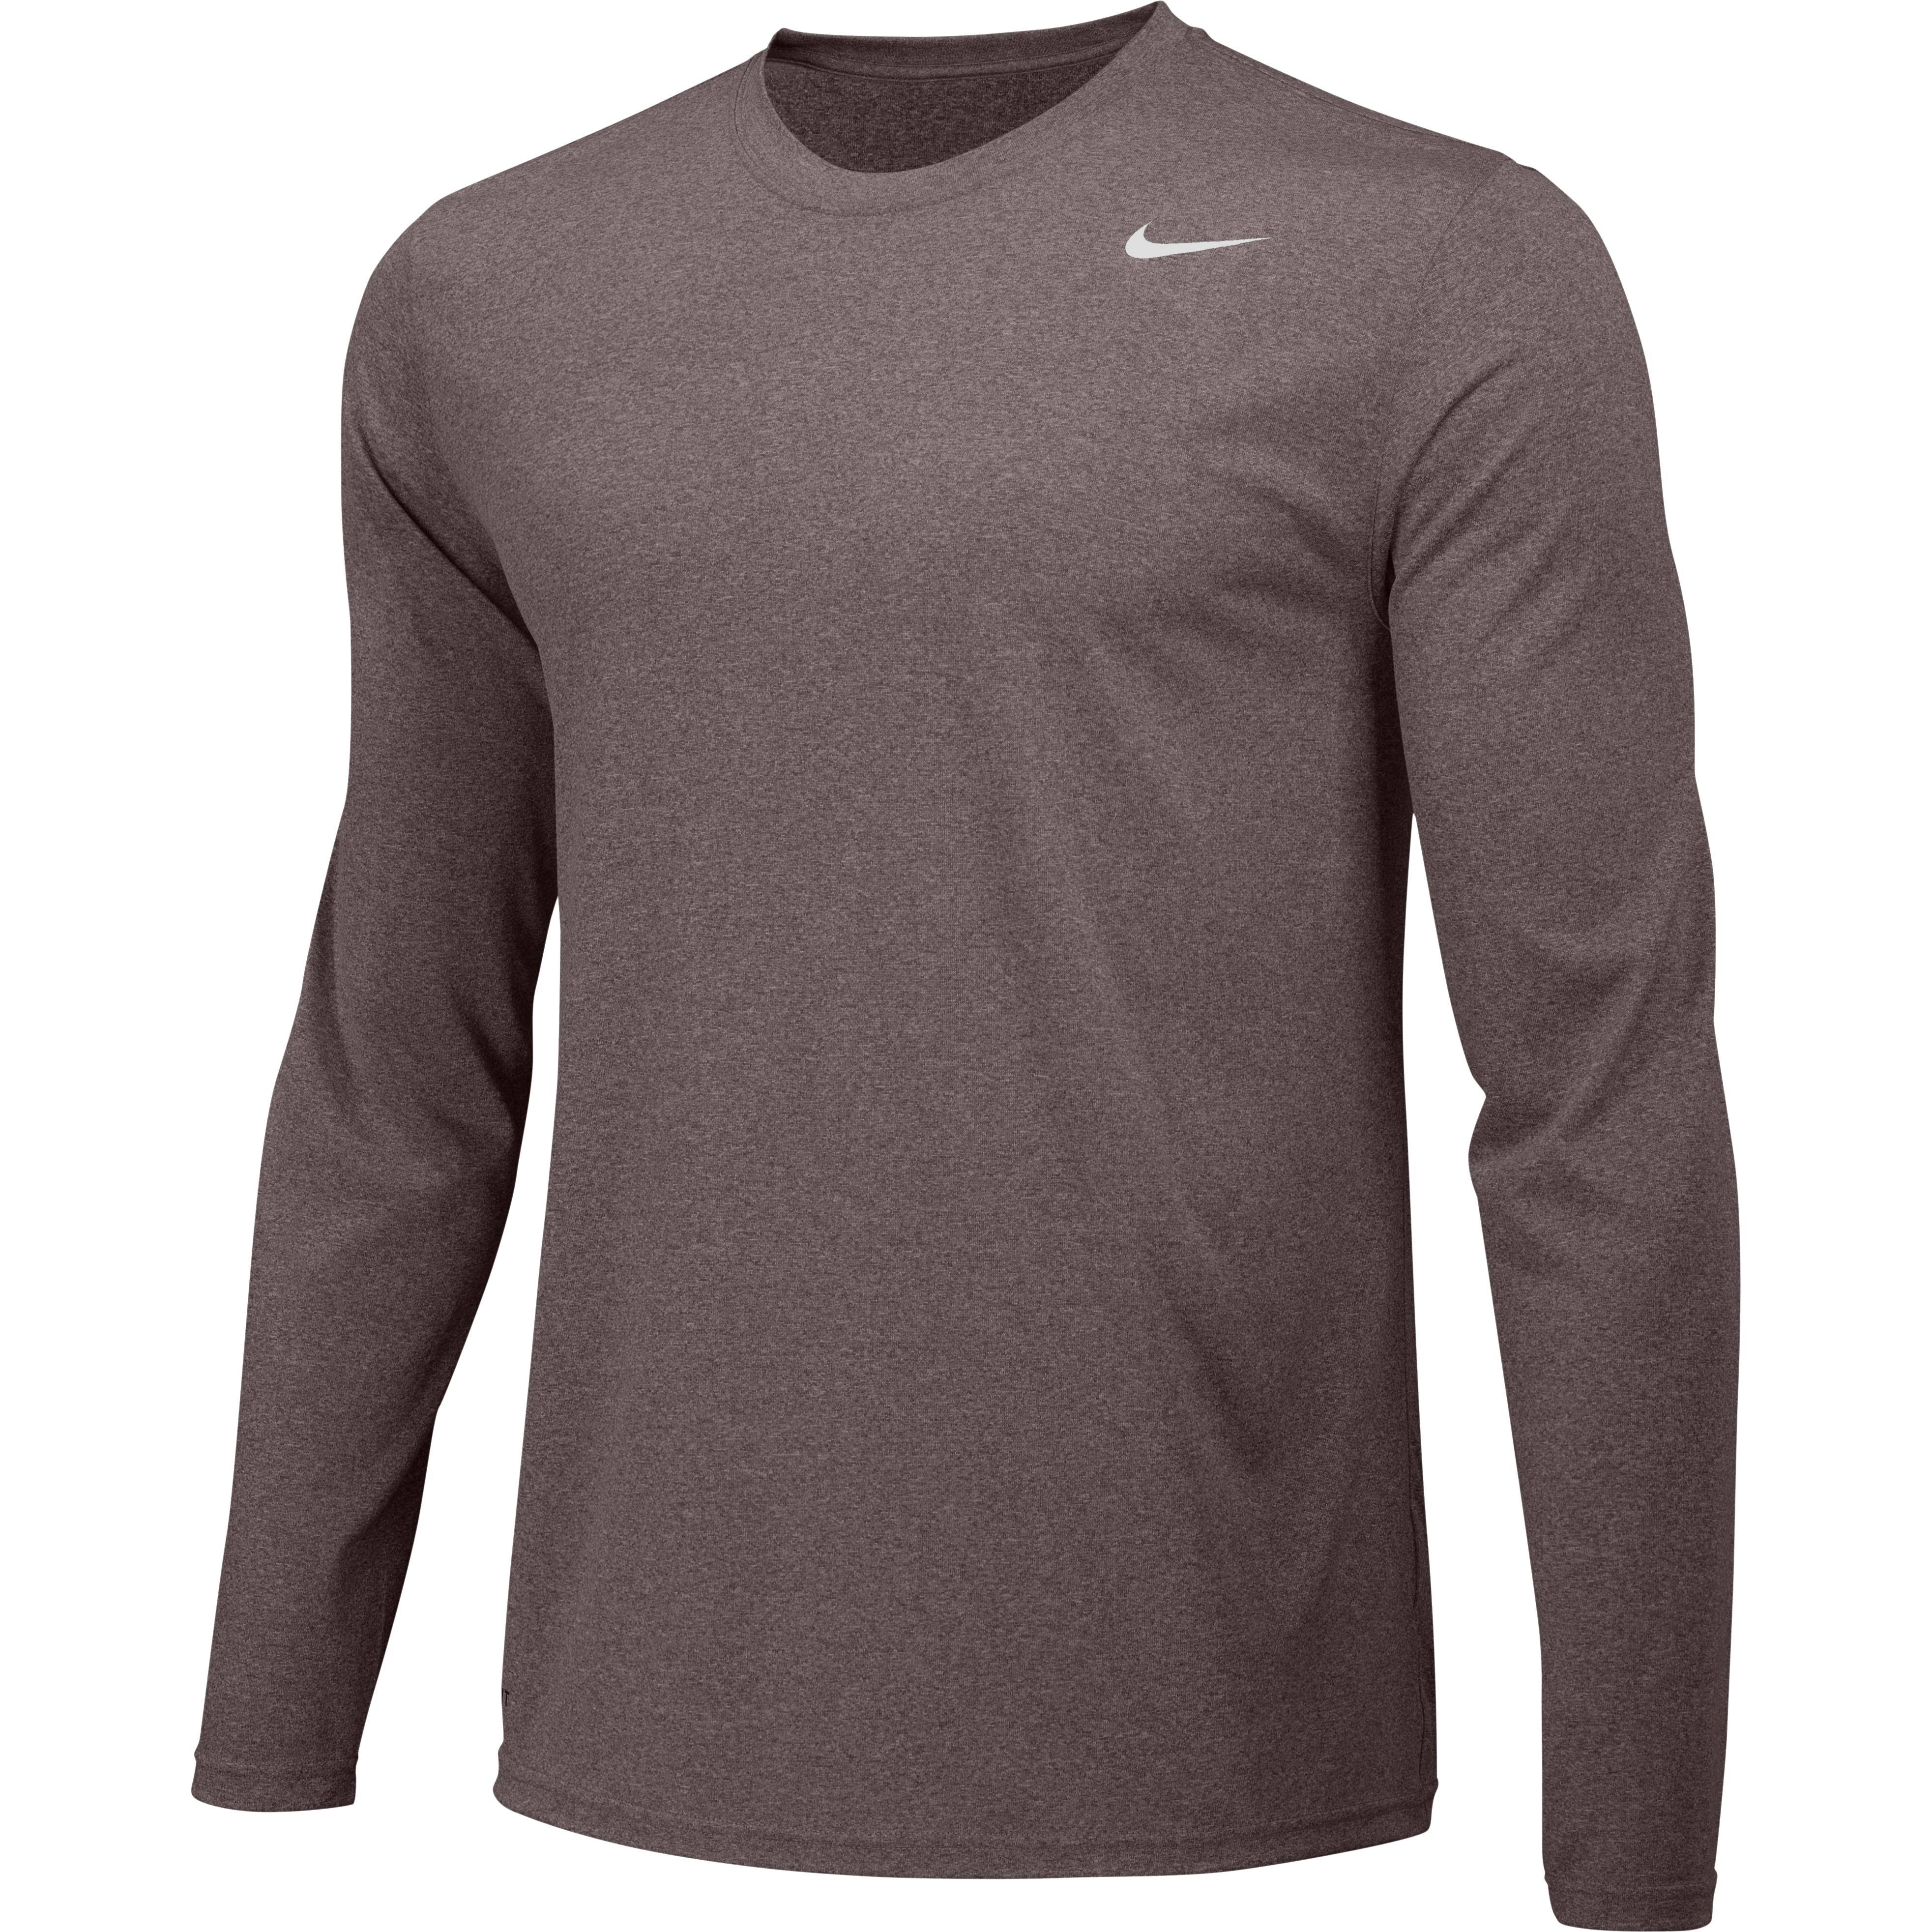 Nike Team Legend Long Sleeve Top